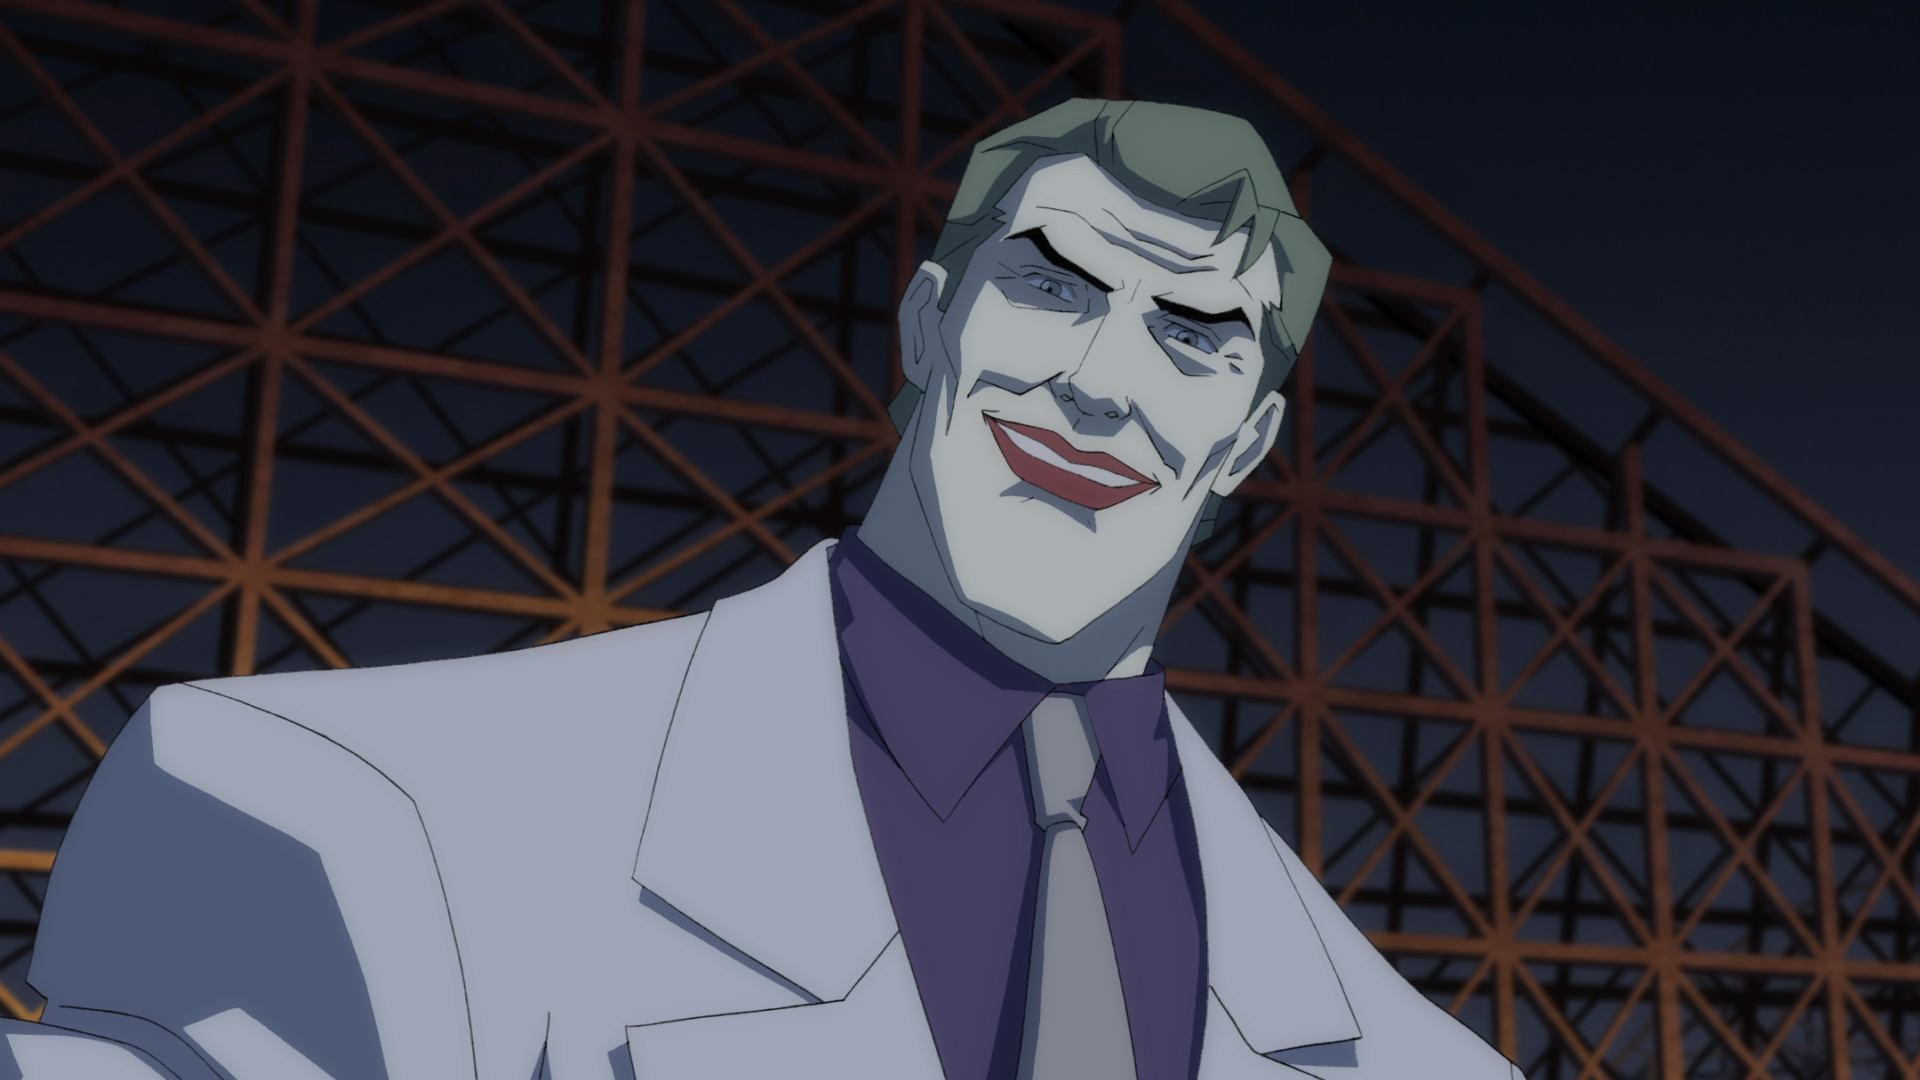 dark knight returns the joker